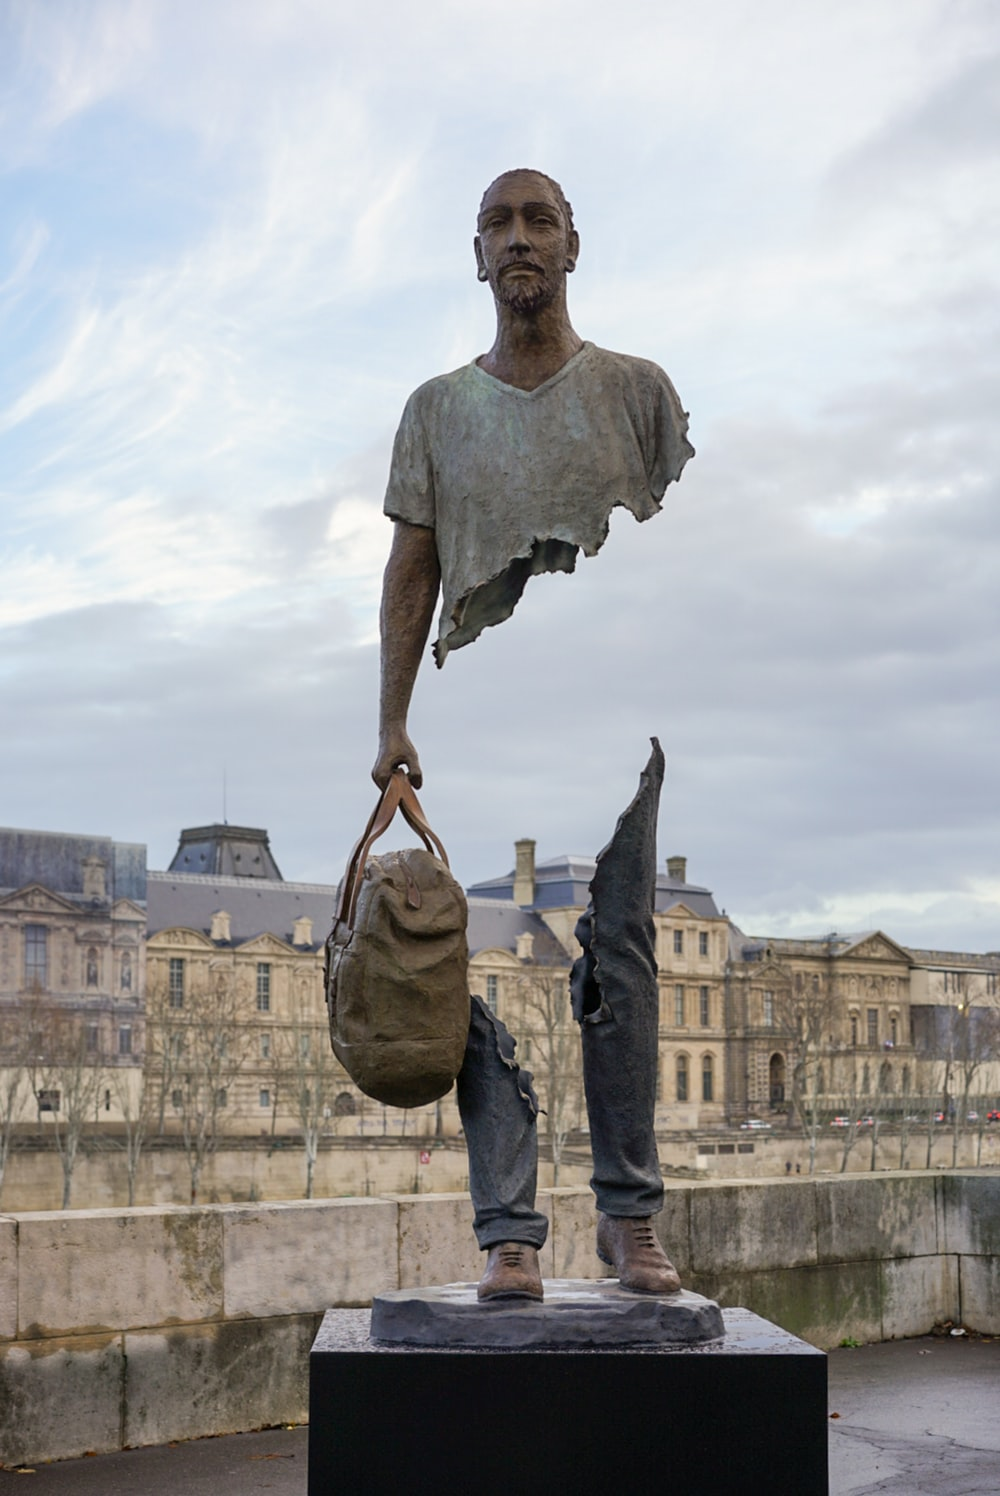 standing man with bag statue